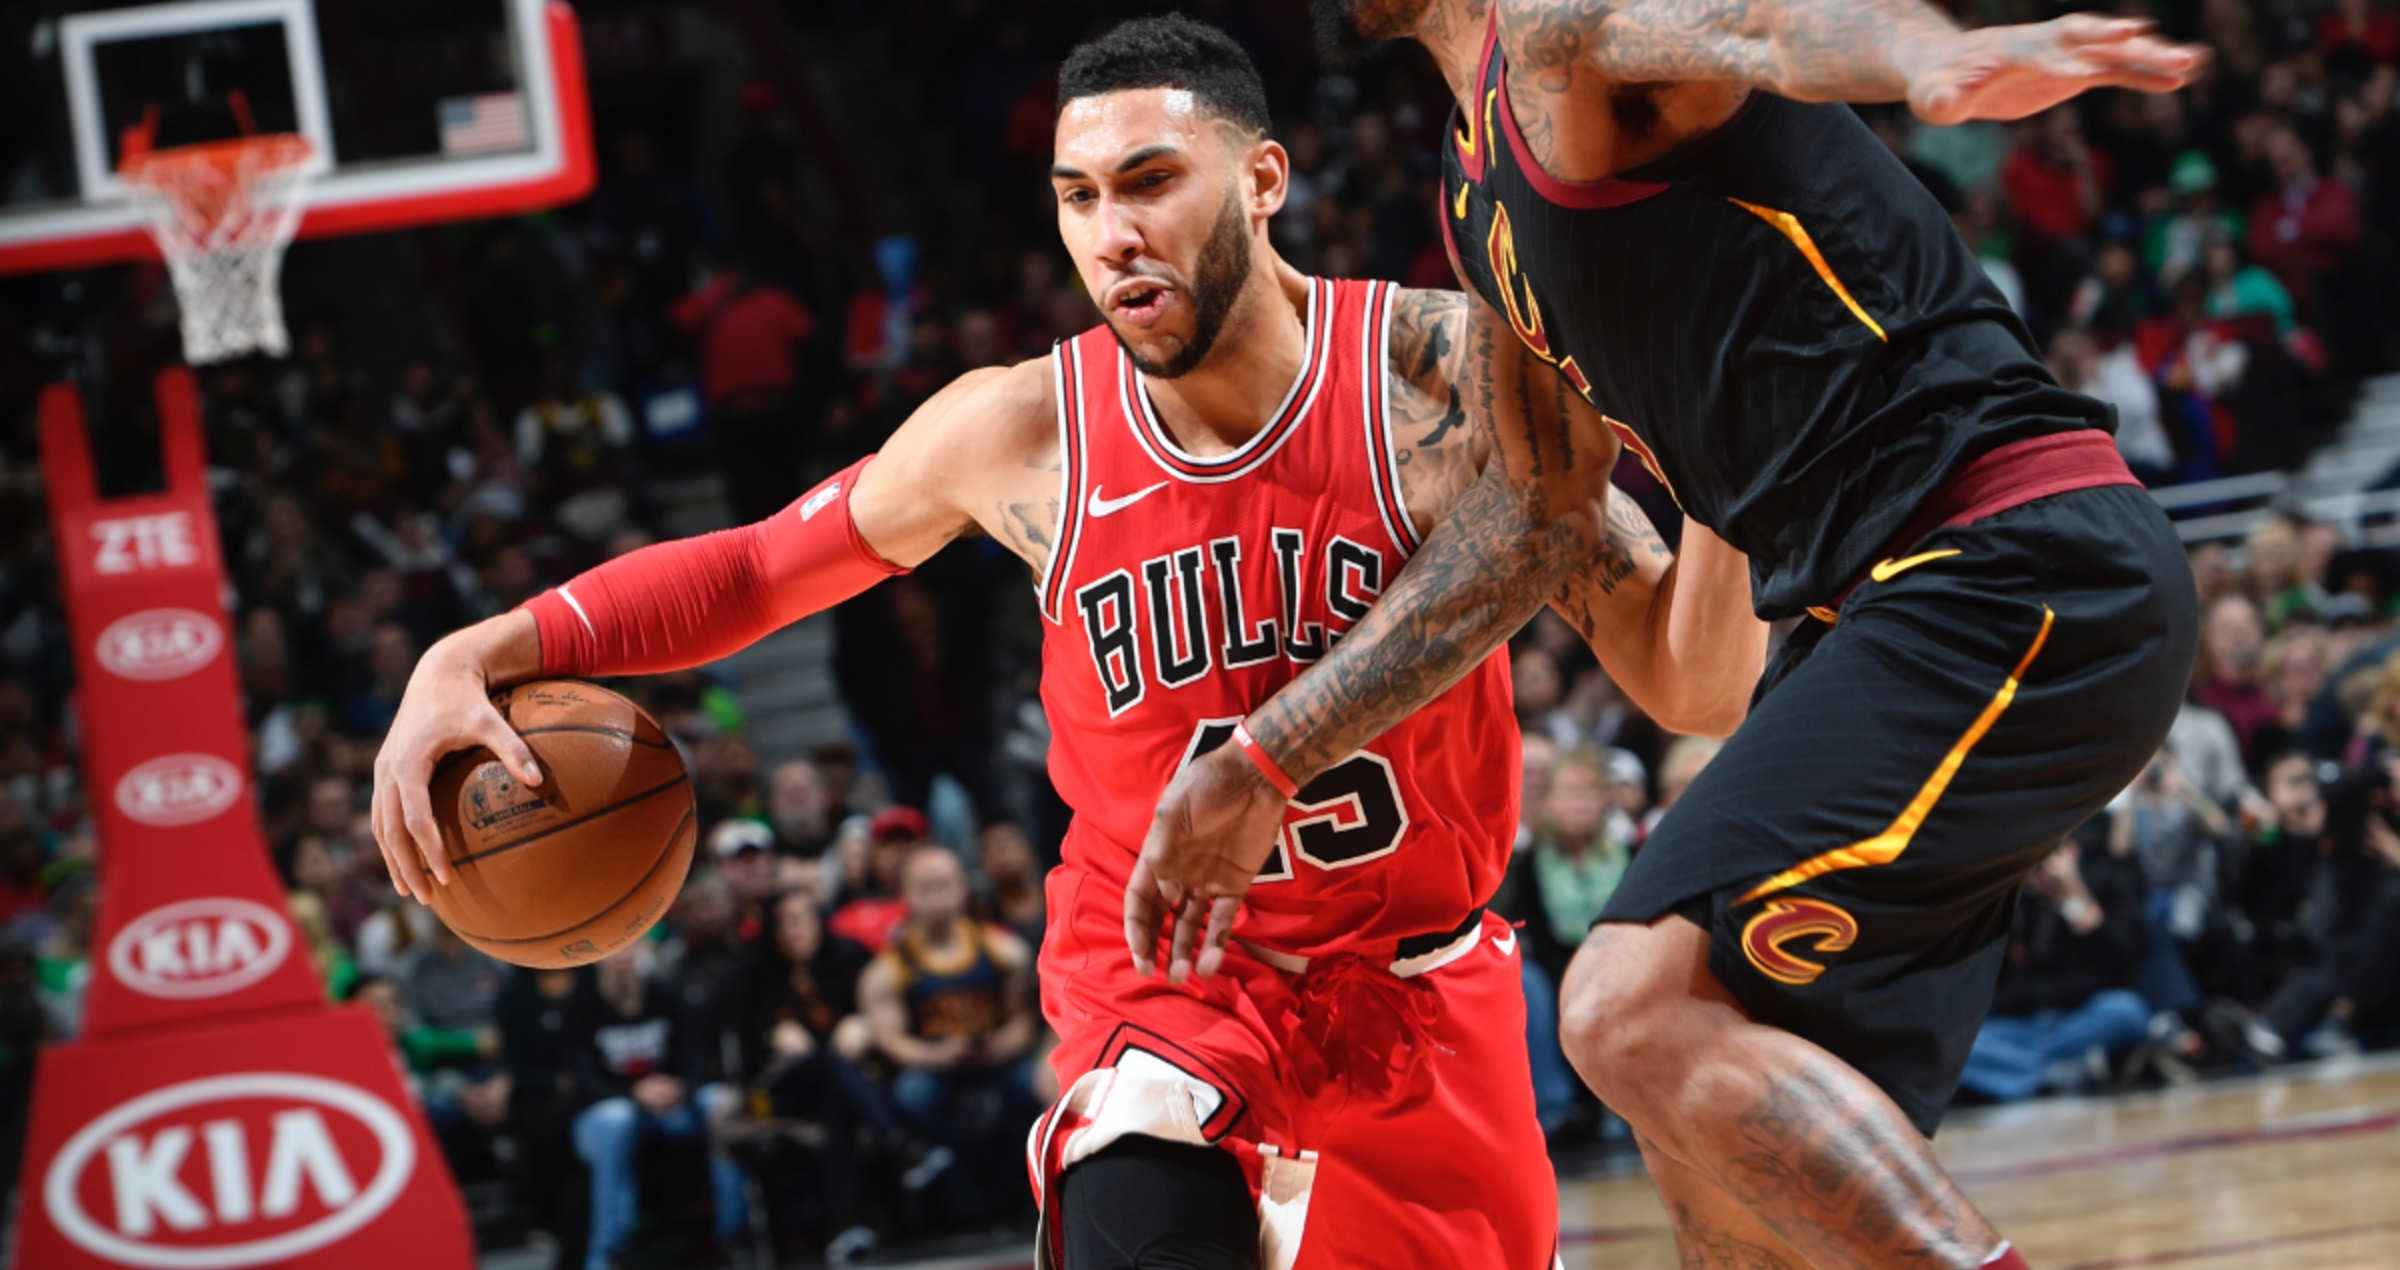 Denzel Valentine takes it to the hoop against Cleveland